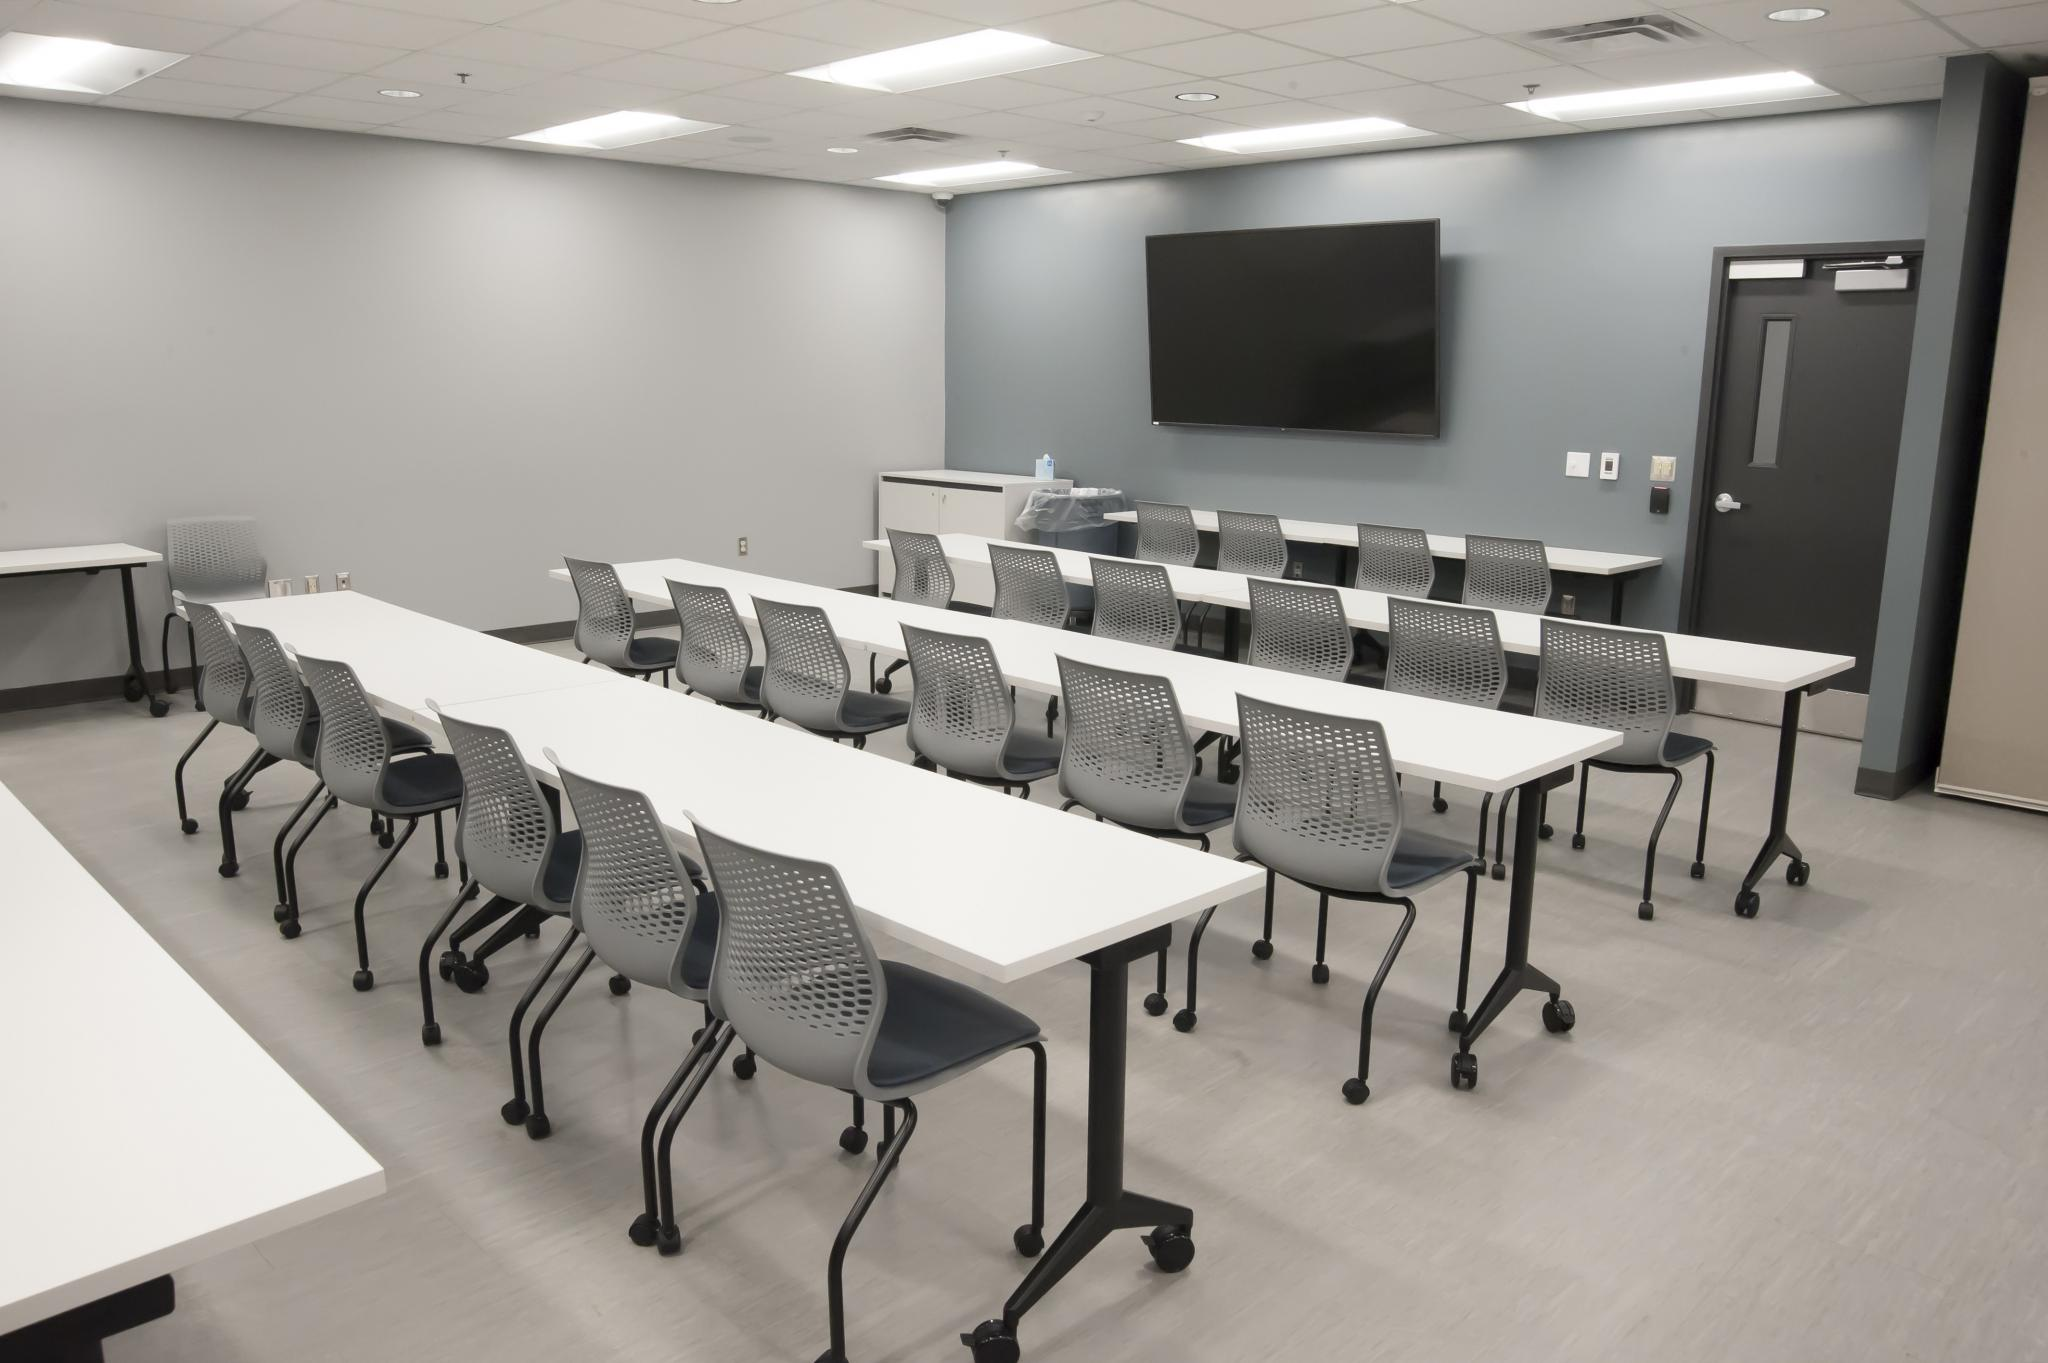 image of tables lined up in conference room